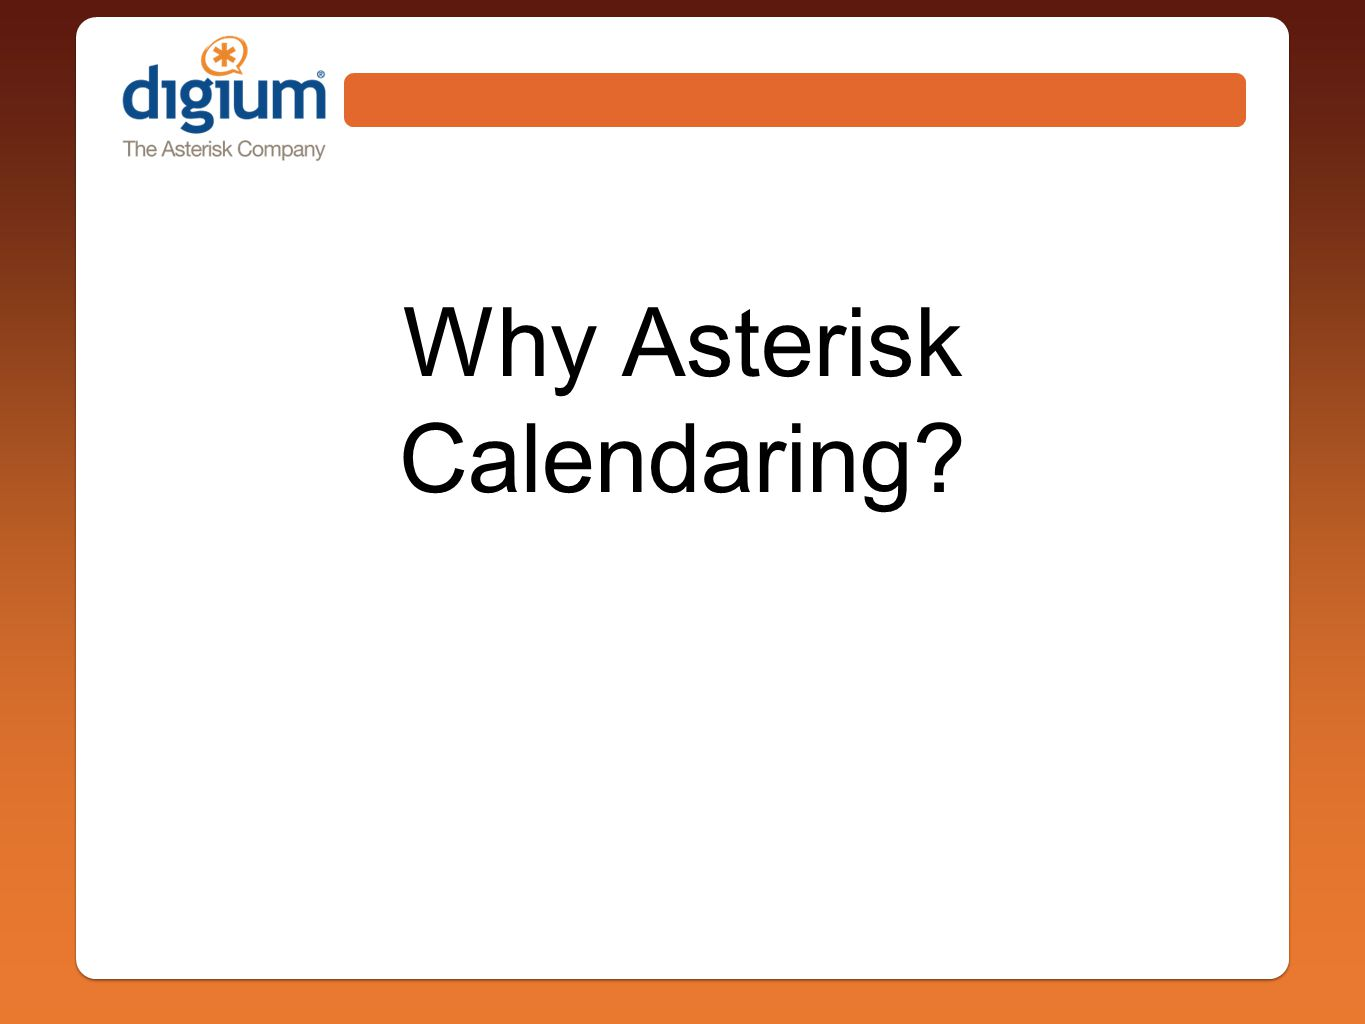 Why Asterisk Calendaring?